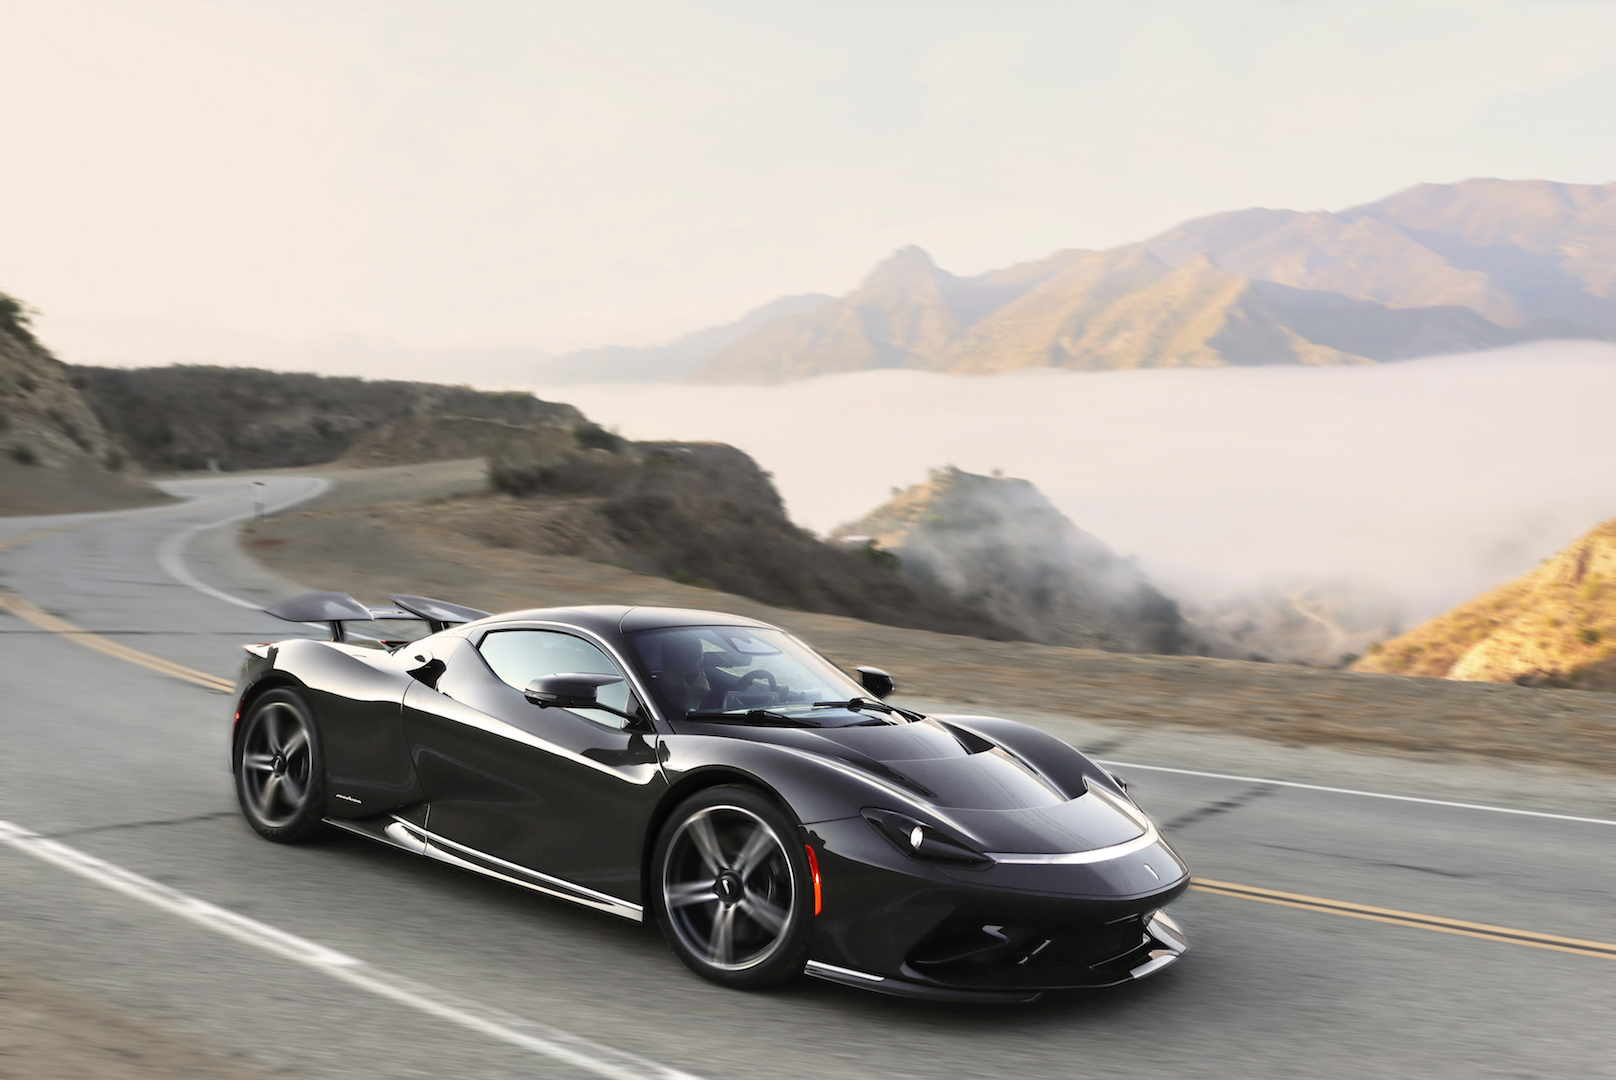 Italian carmaker Automobili Pininfarina has debuted the Battista, the first pure-electric hyper GT, on the streets of California as part of Monterey C